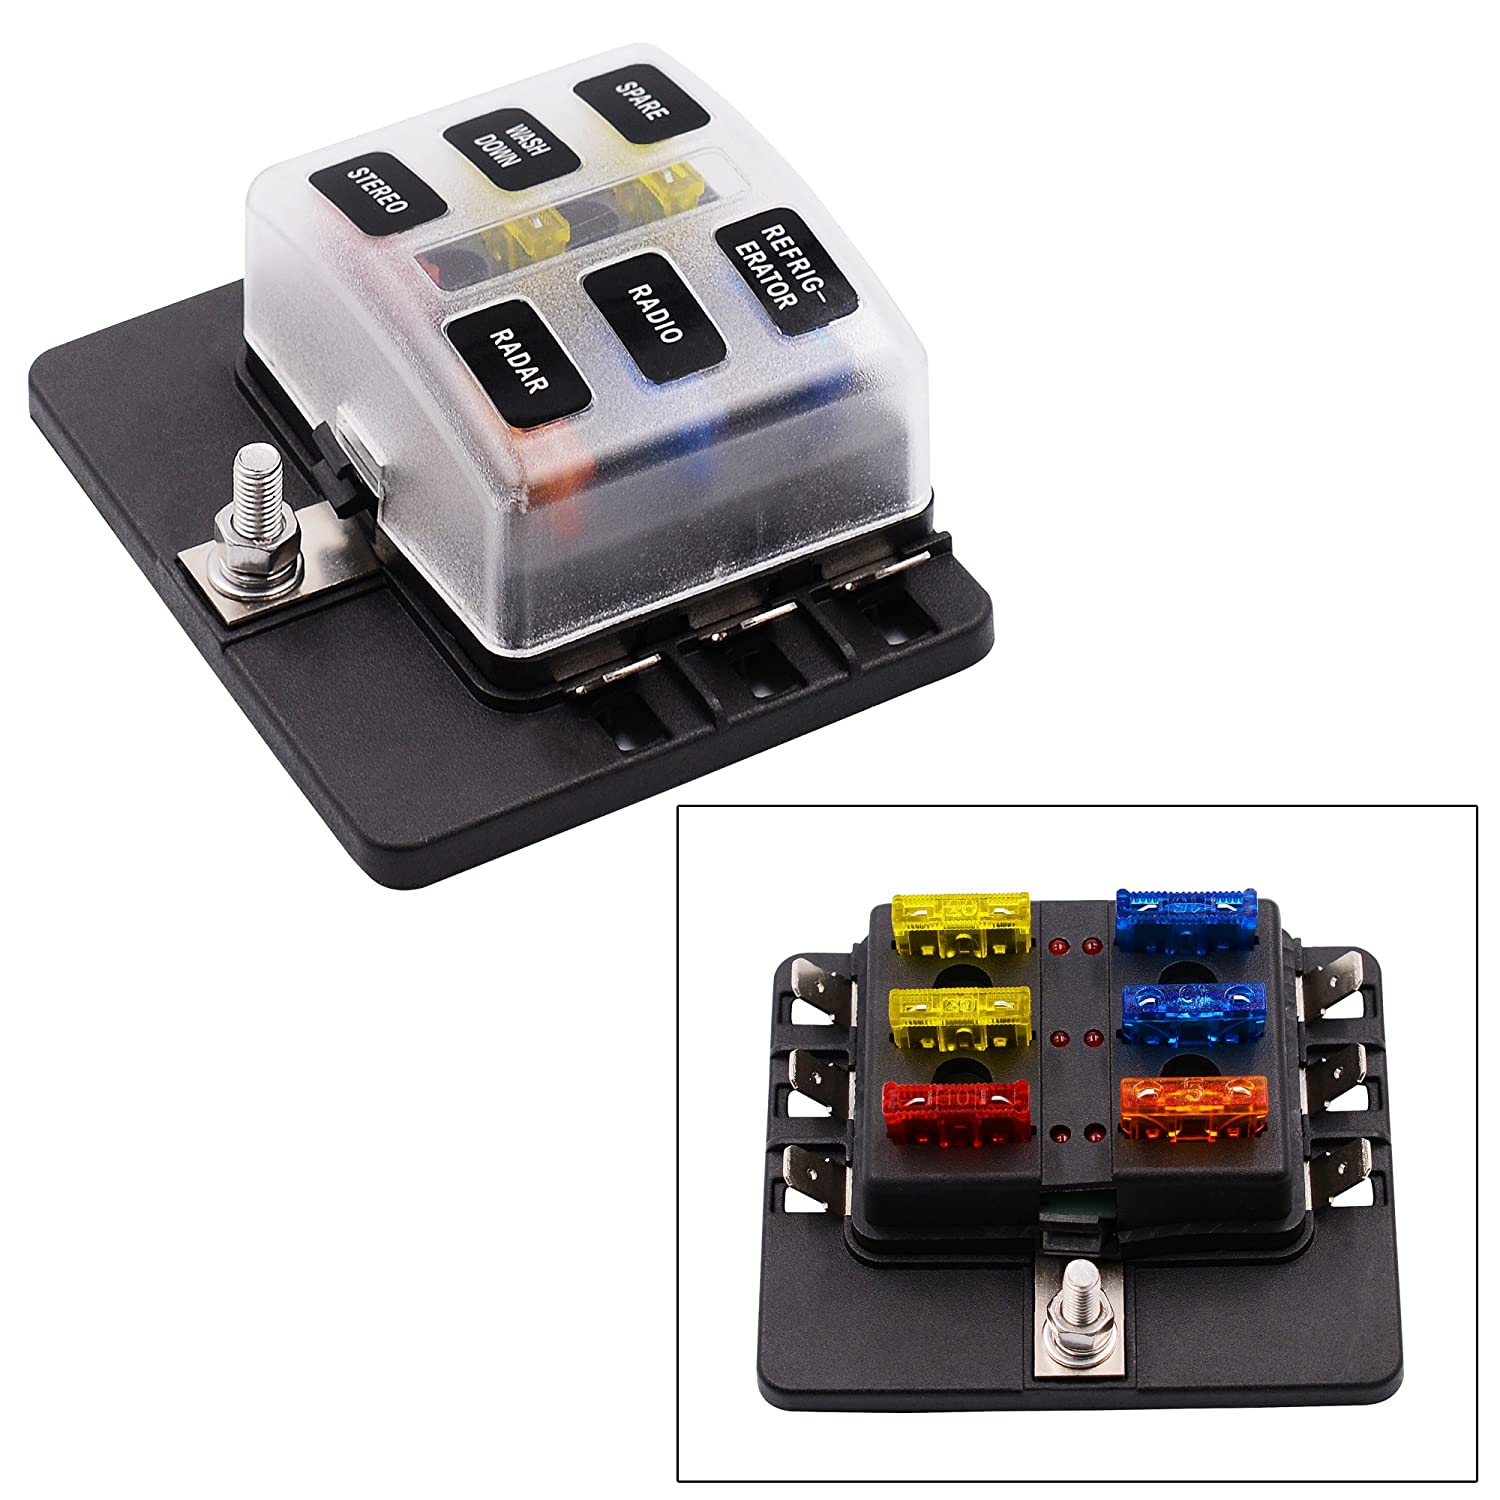 Ocamo 12-30v 6 Way Car Auto Boat Bus UTV Blade Fuse Box Block Cover with LED Indicators